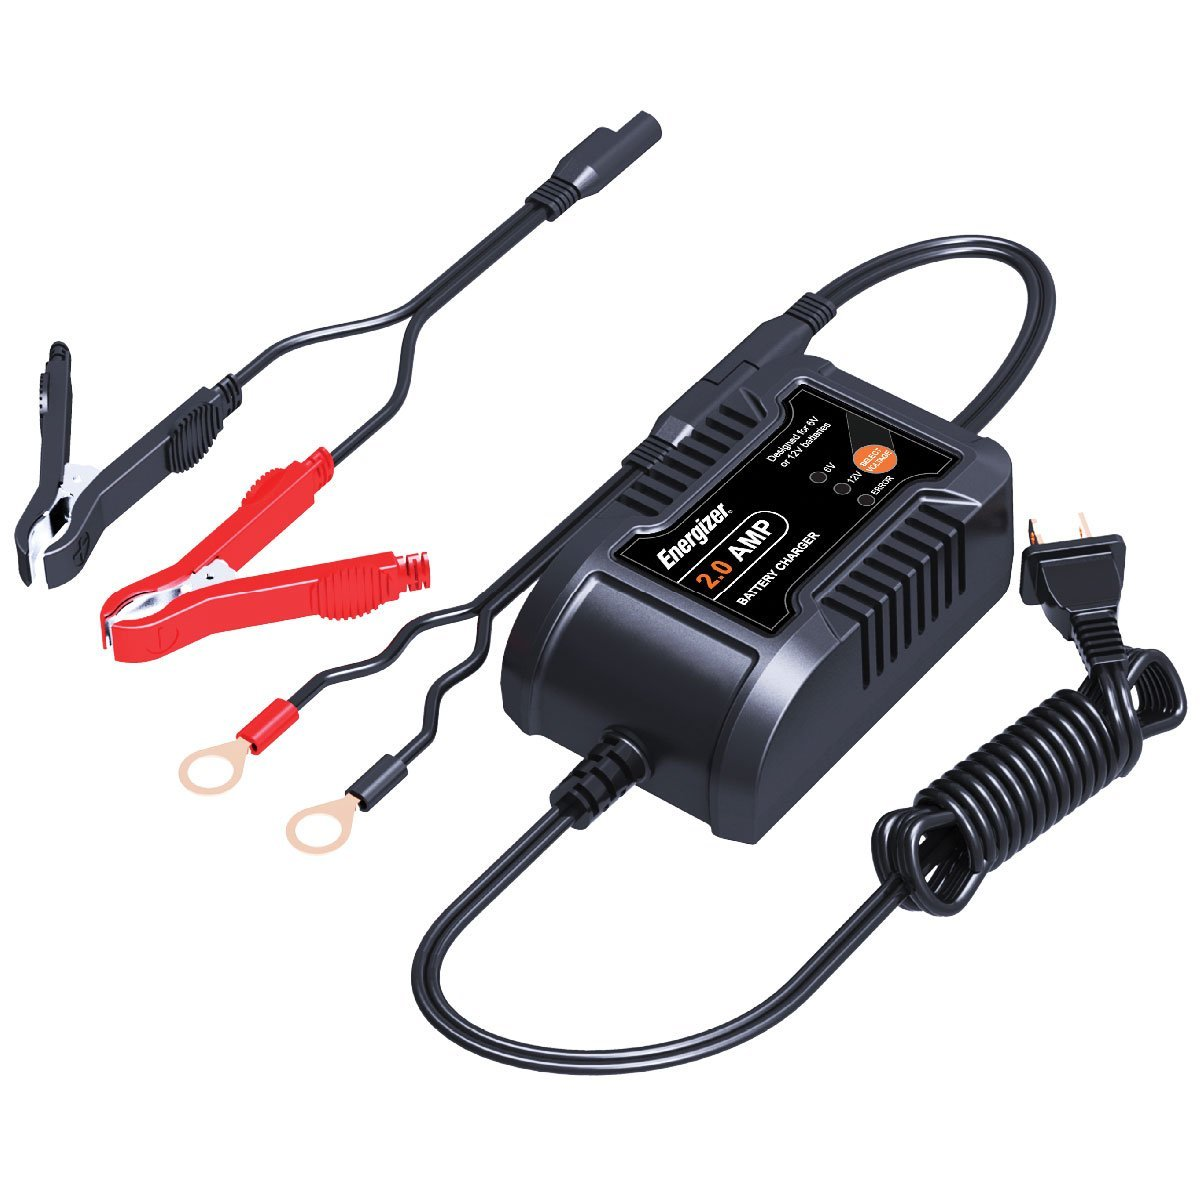 Car Battery Charger Fully Protected Against Overcharge Shortcircuit